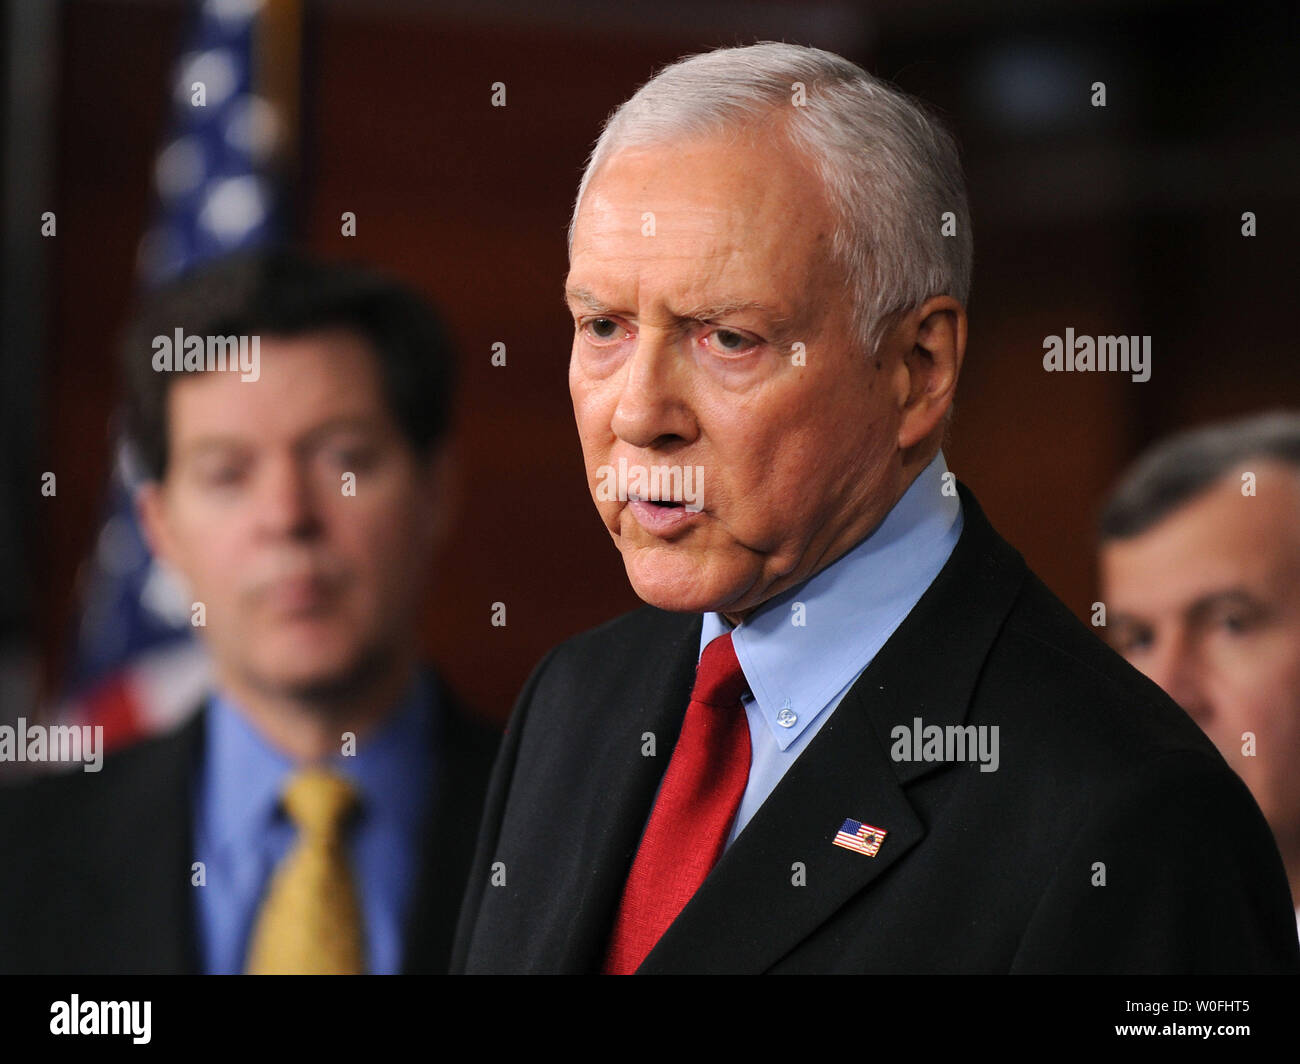 Sen. Orrin Hatch (R-UT) speaks on the health care reform bill and the possibility that the bill could provide public funding for abortions, in Washington on March 18, 2010. Hatch was joined by Sen. Sam Brownback (R-KS). UPI/Kevin Dietsch Stock Photo